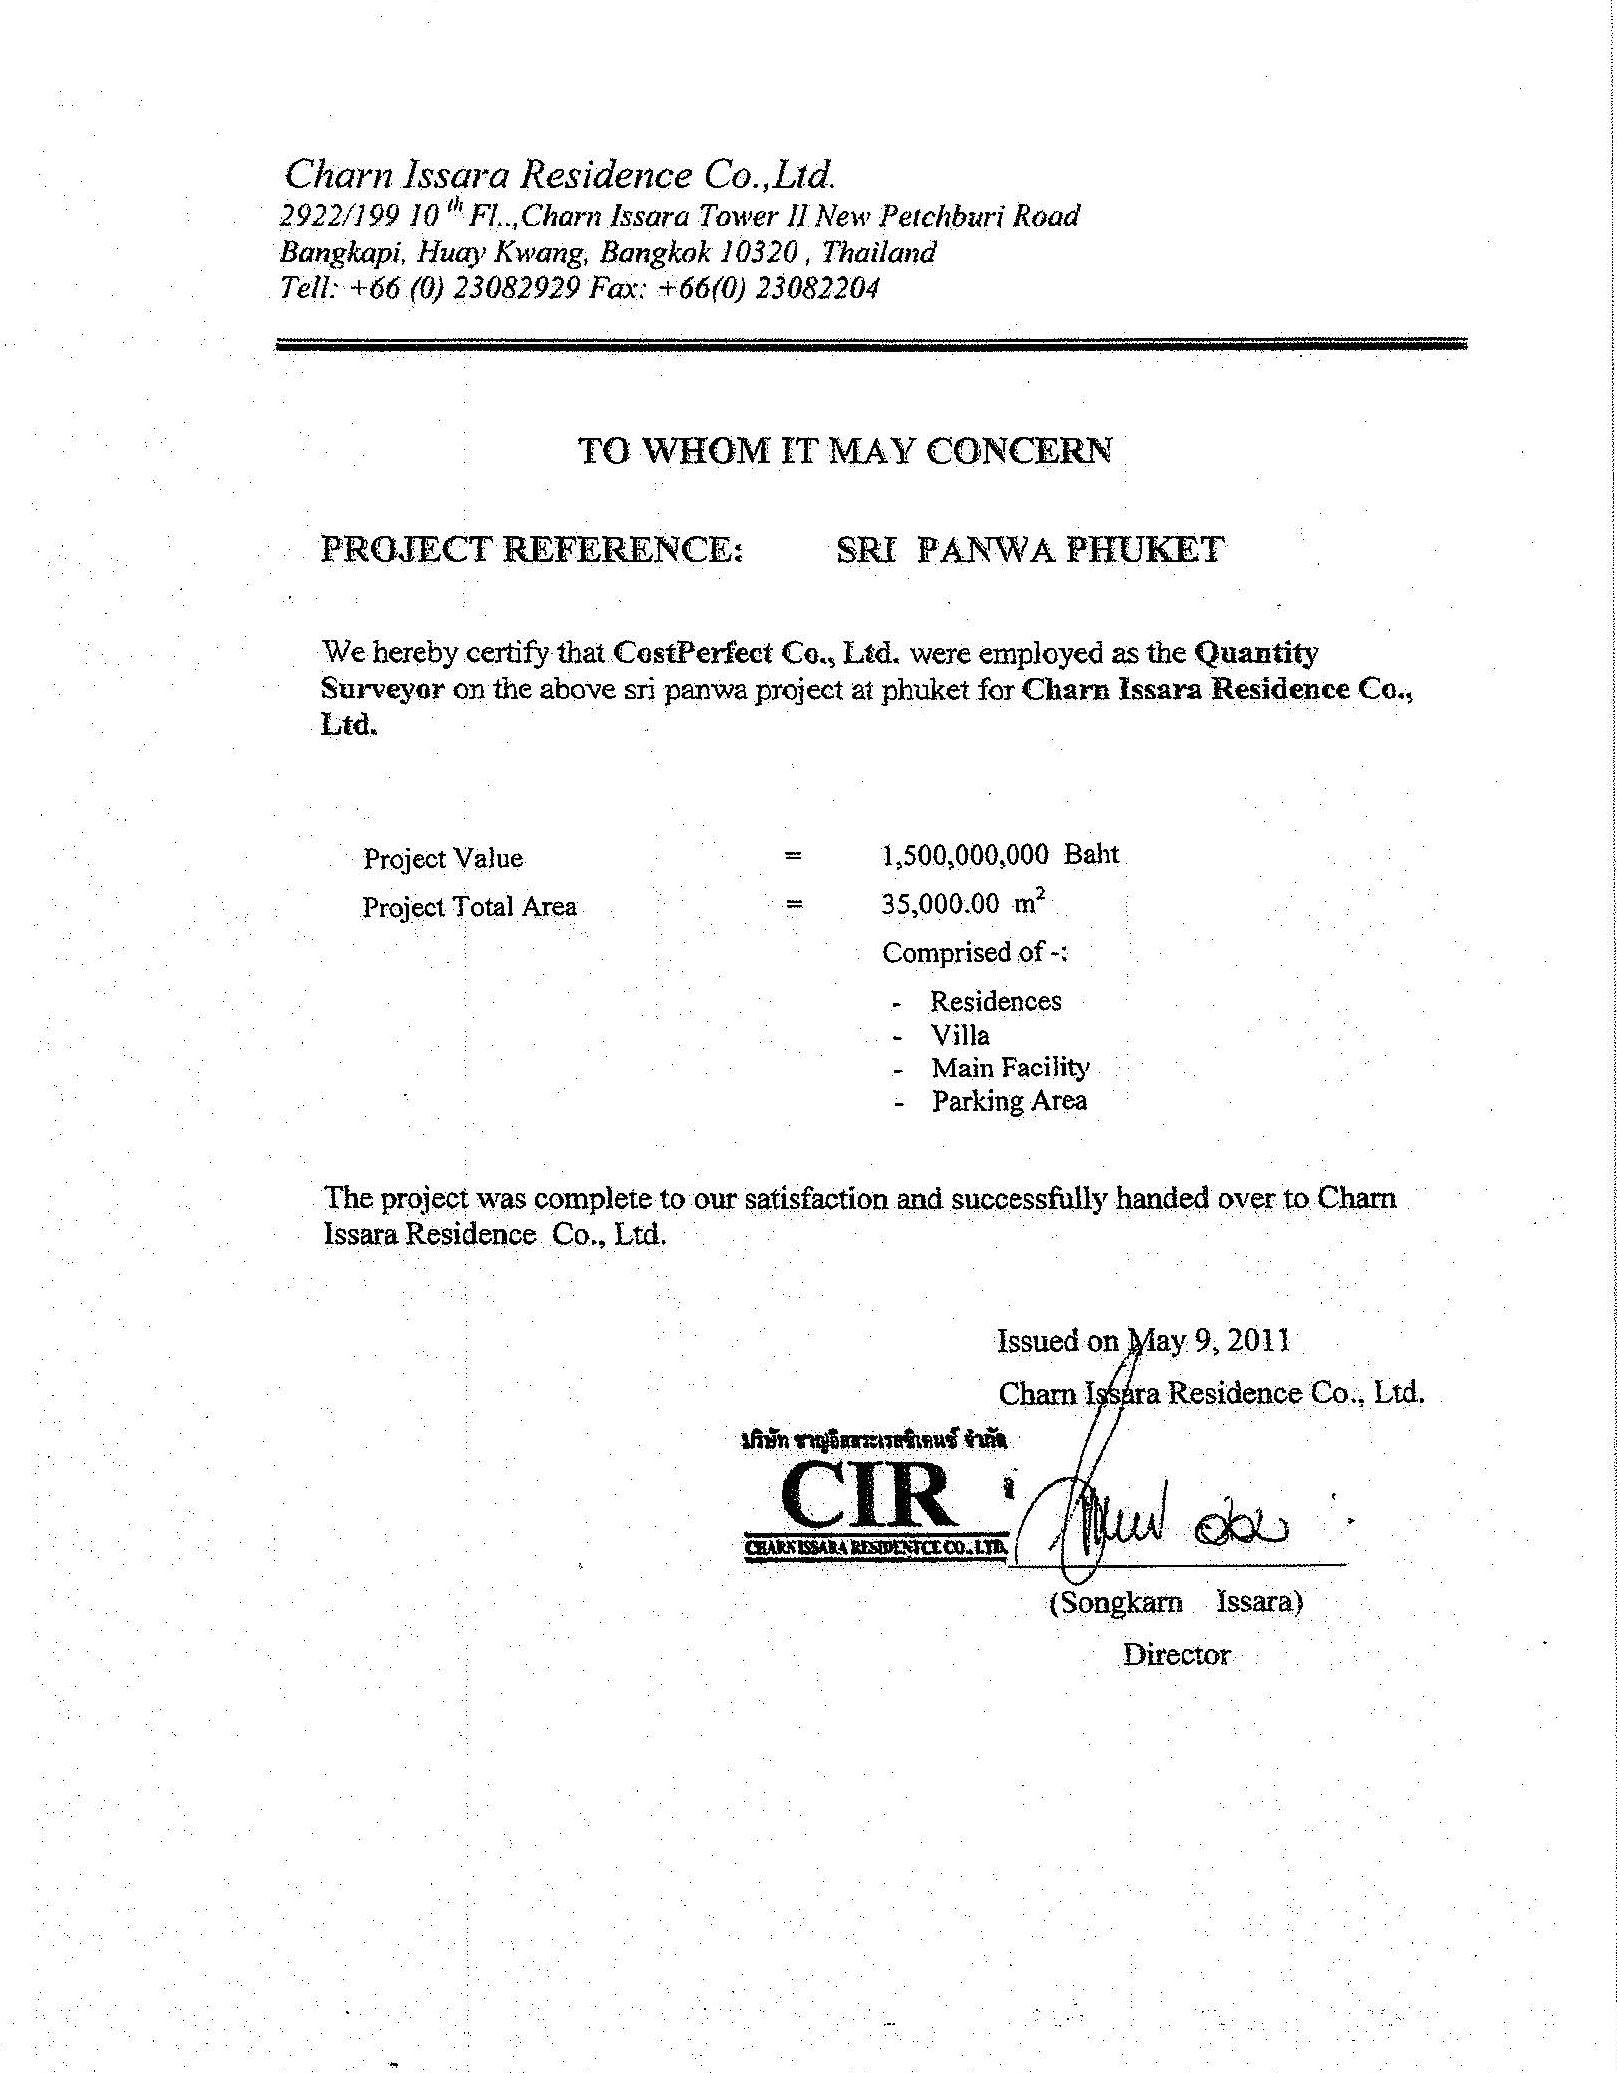 Combine file for printing Page 3